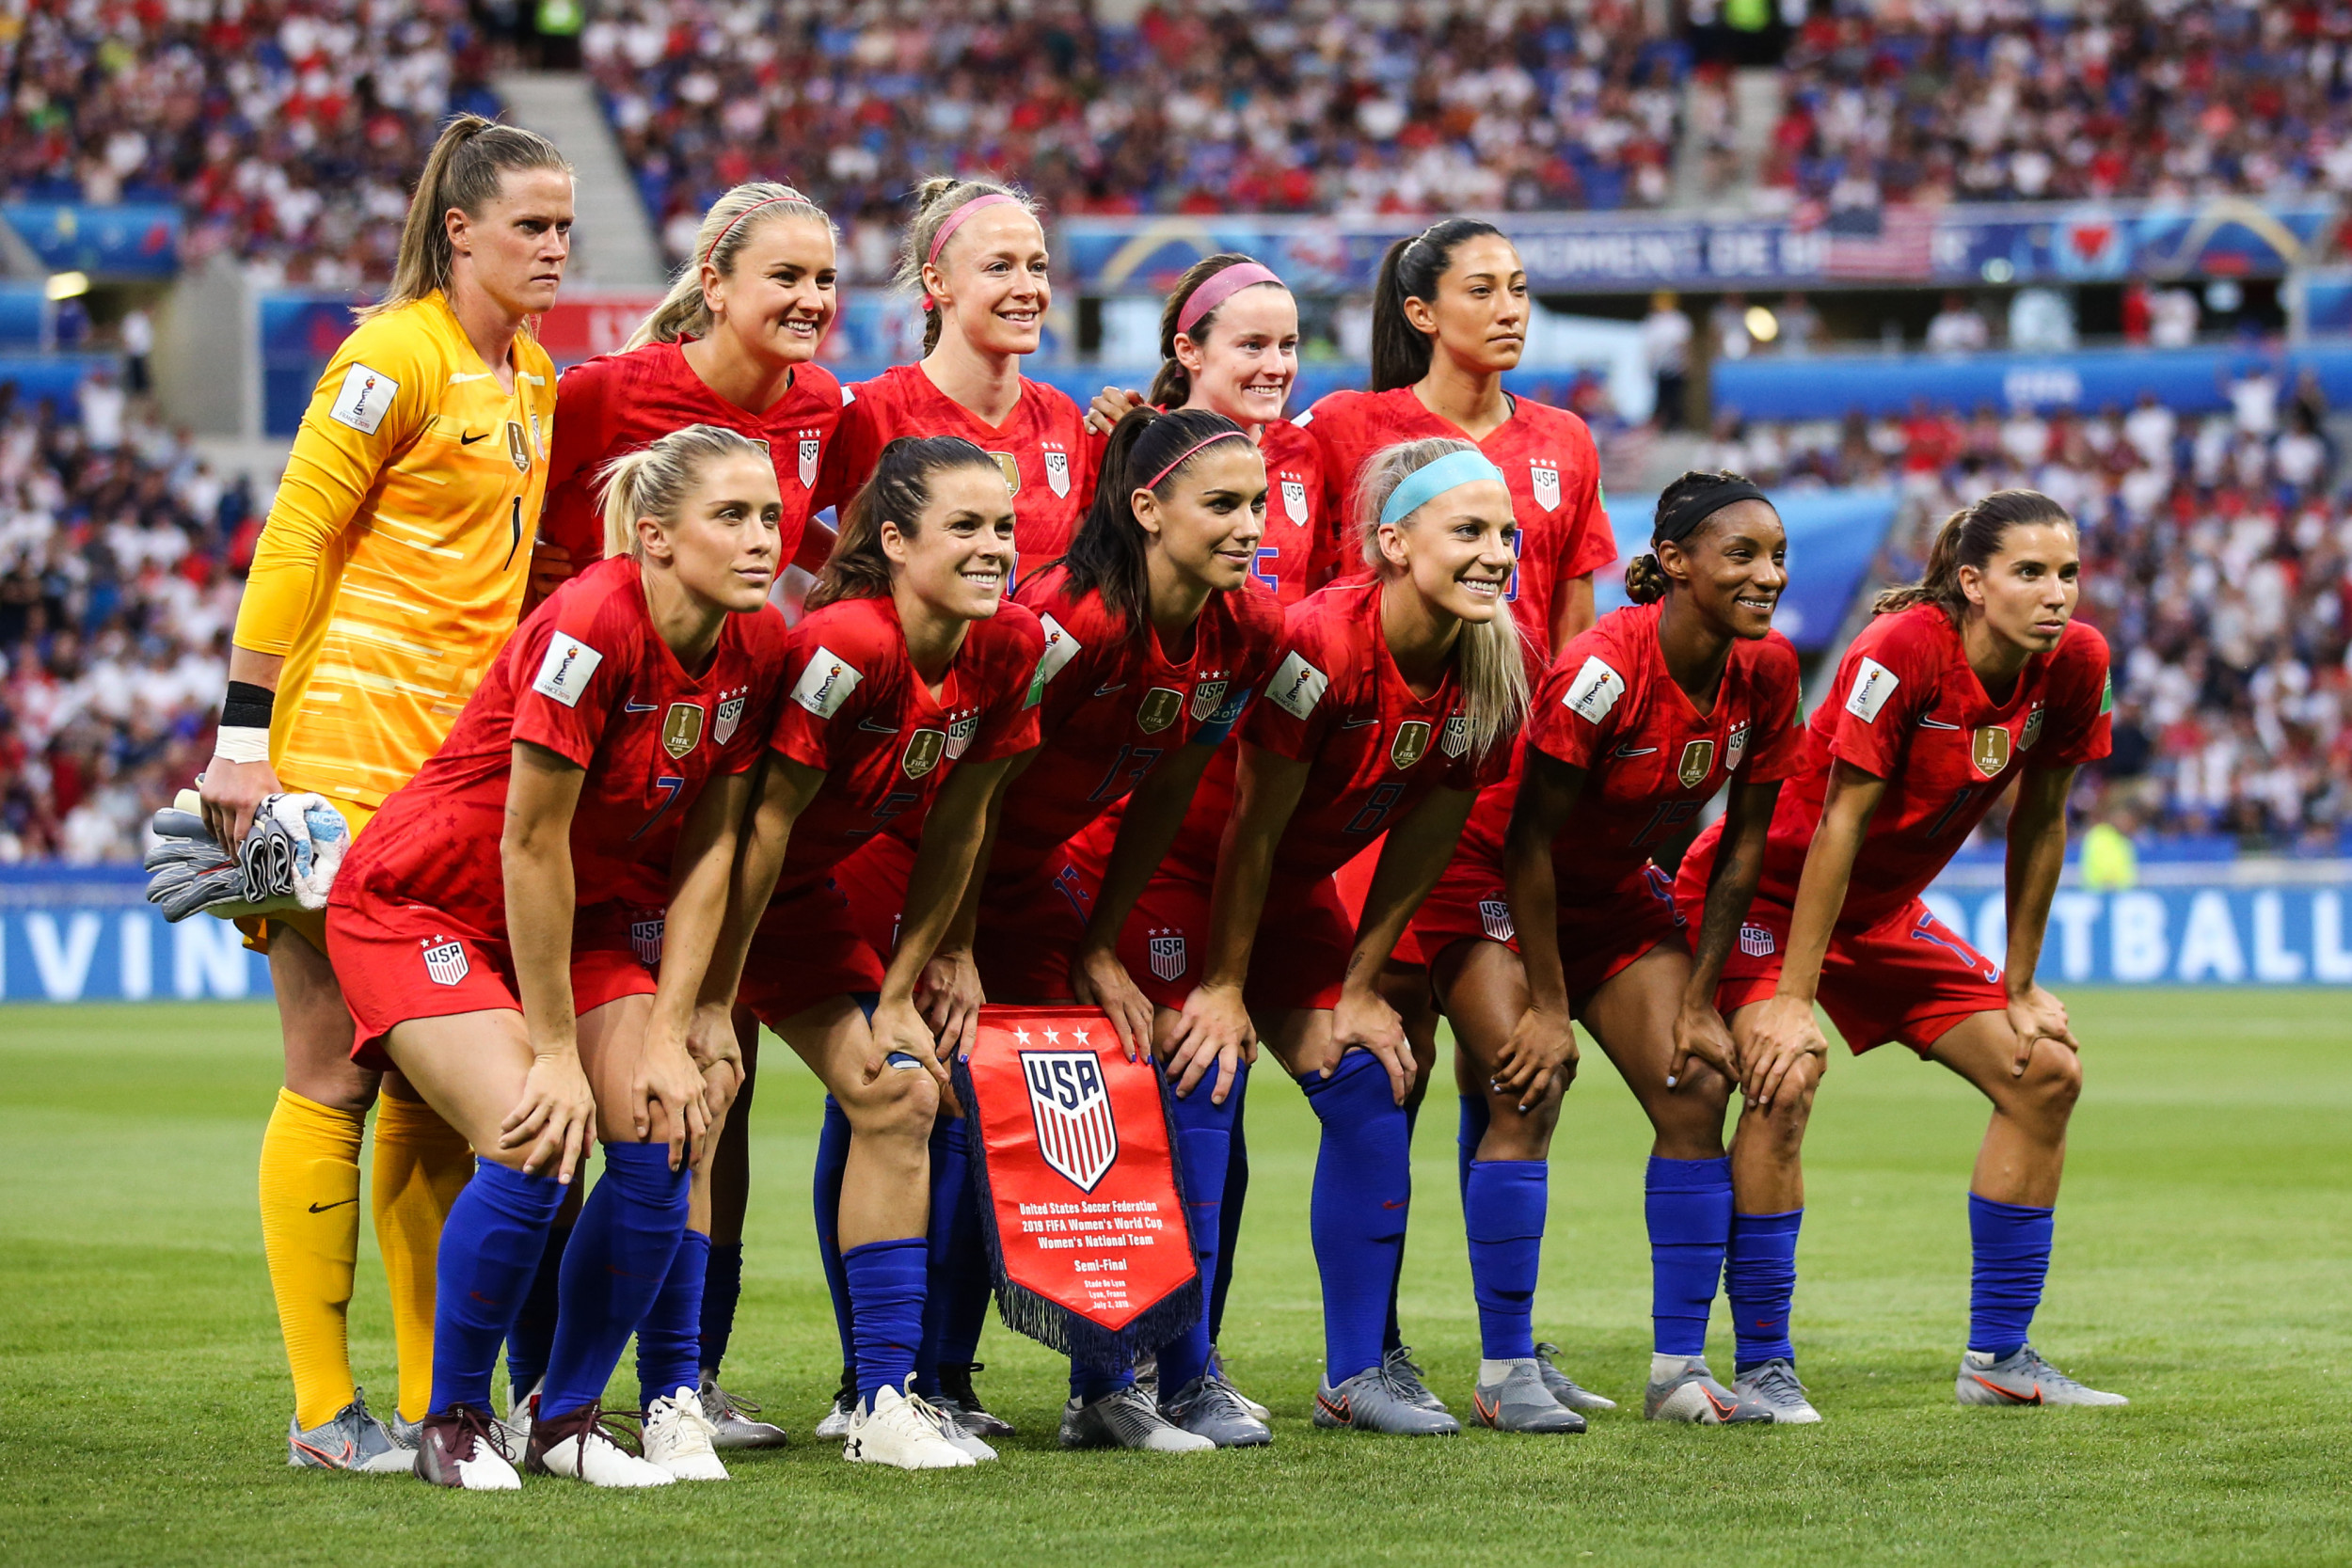 women s world cup final latest odds expert predictions for uswnt vs netherlands